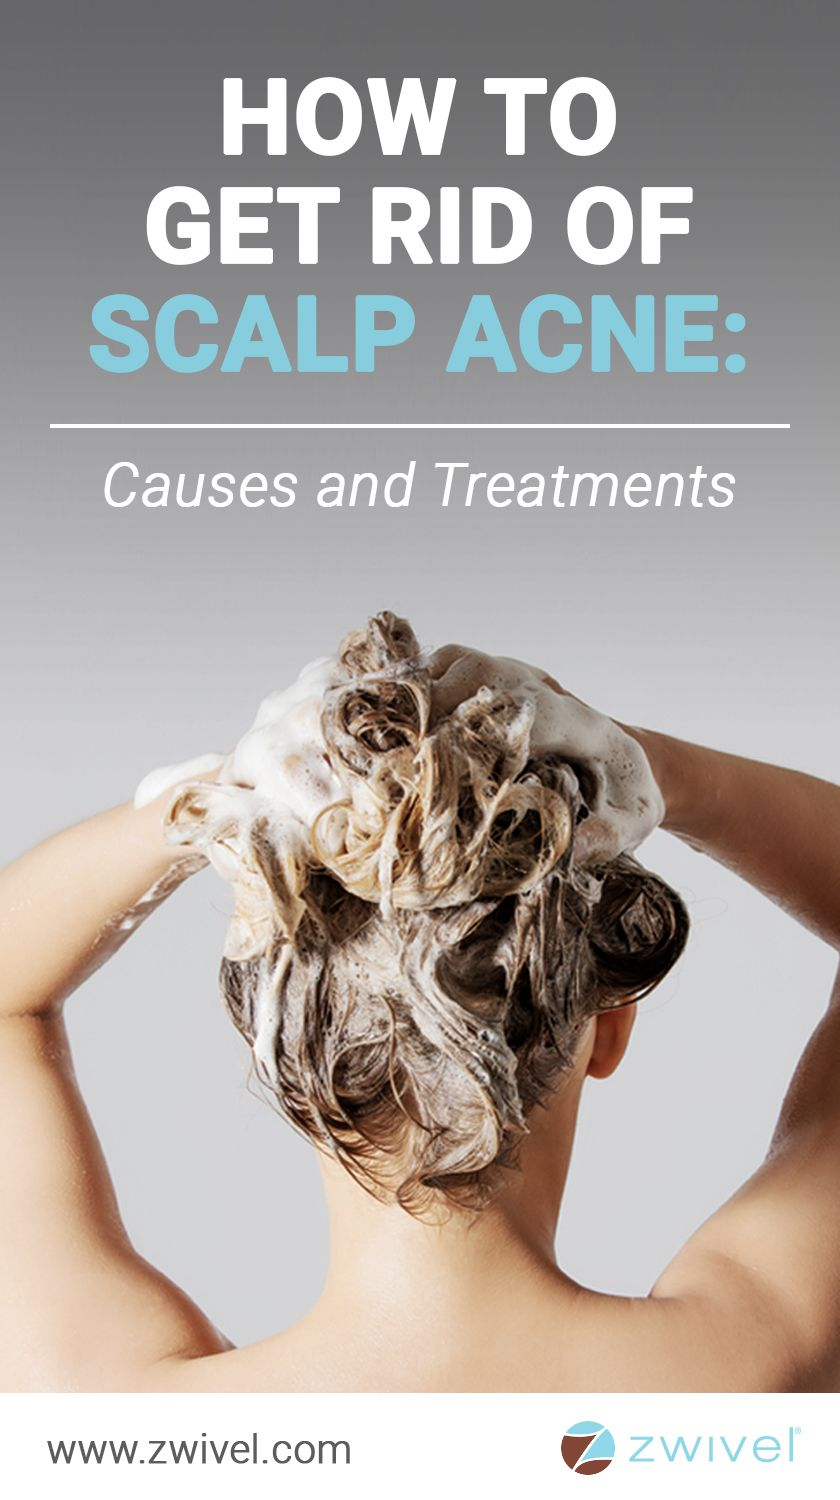 How to get rid of scalp acne causes and treatments